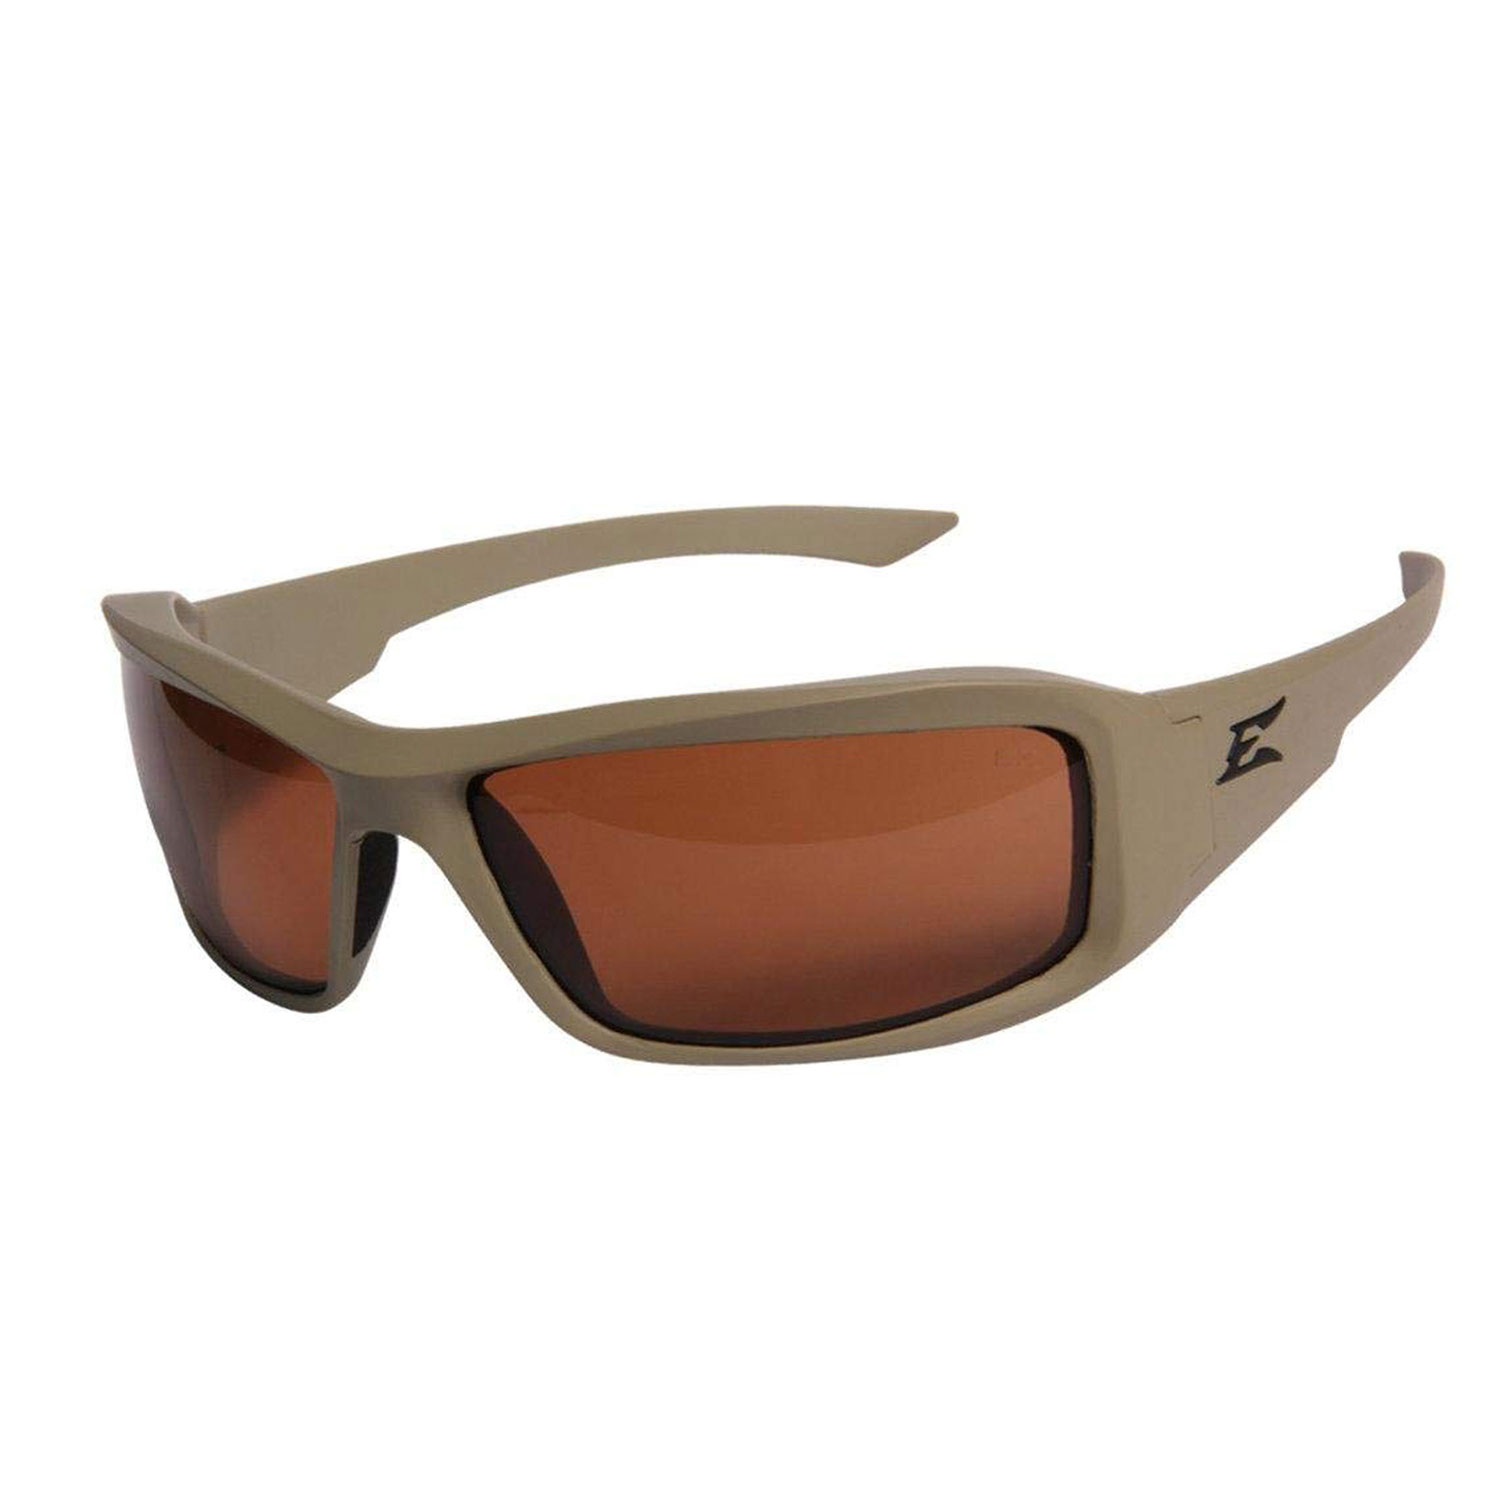 Edge Eyewear Hamel Sand Thin Temple Polarized Safety Glasses